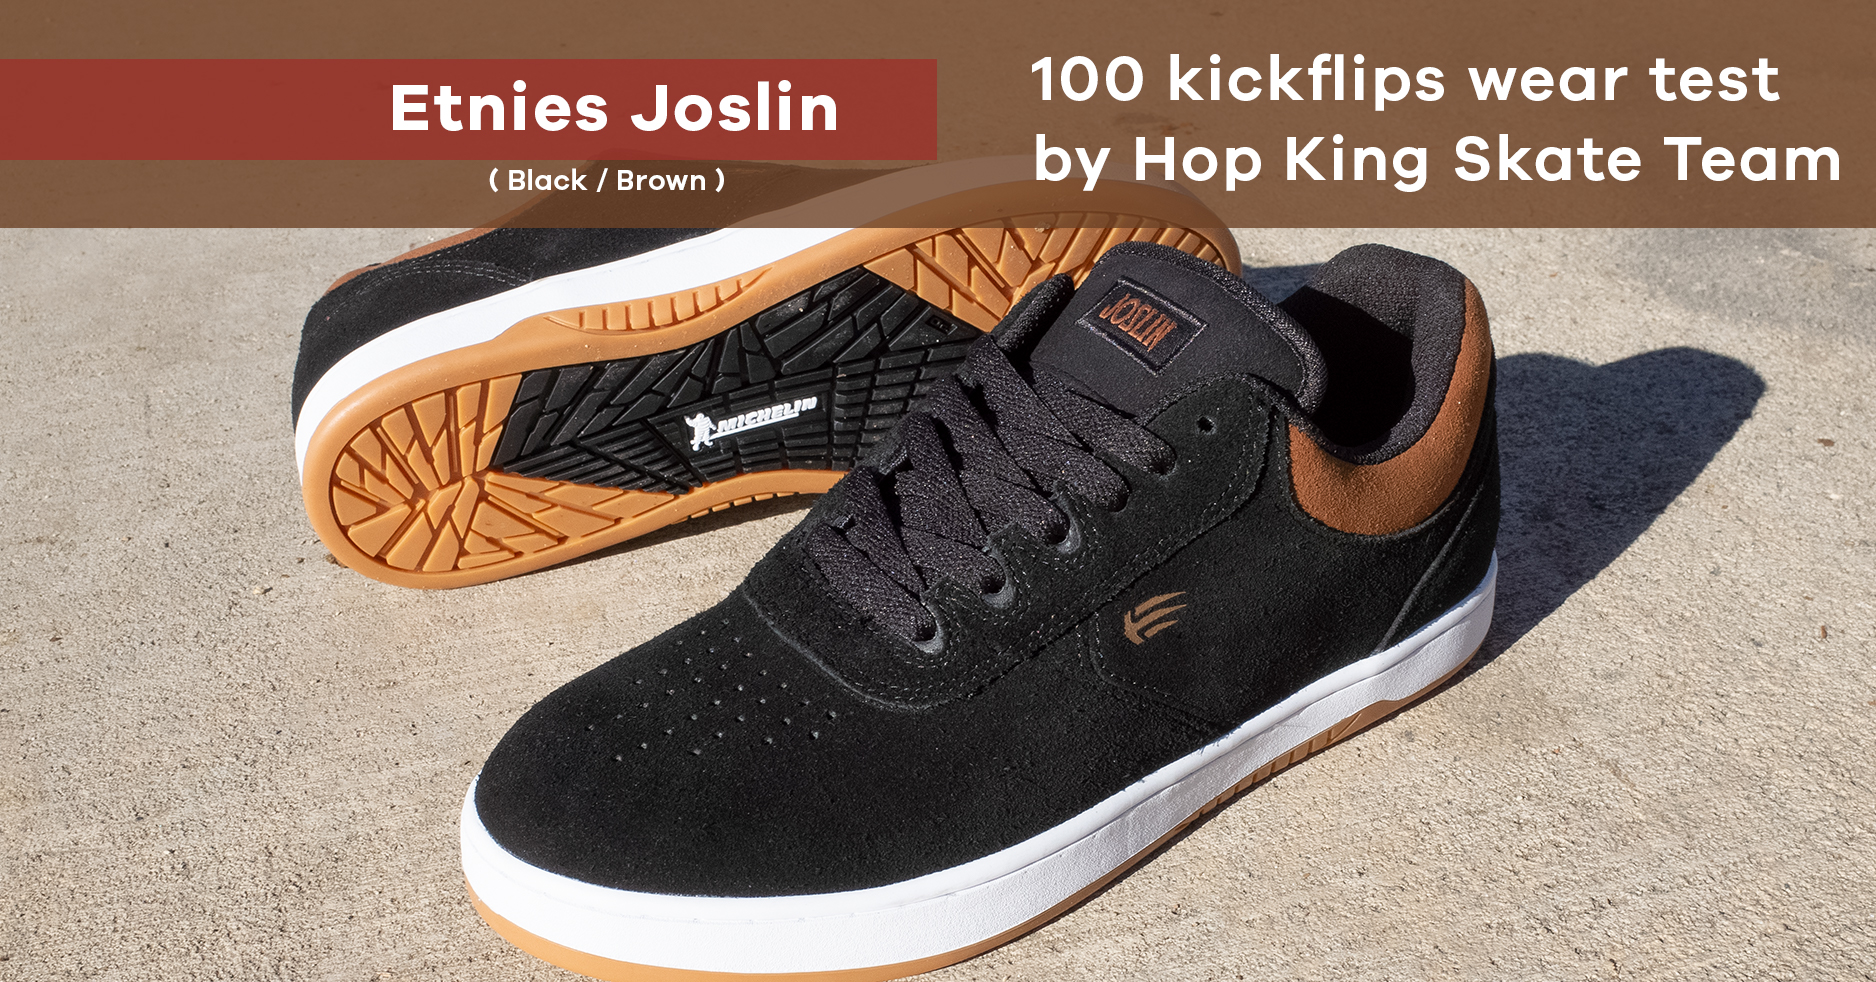 Etnies Joslin skate shoe wear test | Surfdome x Hop King